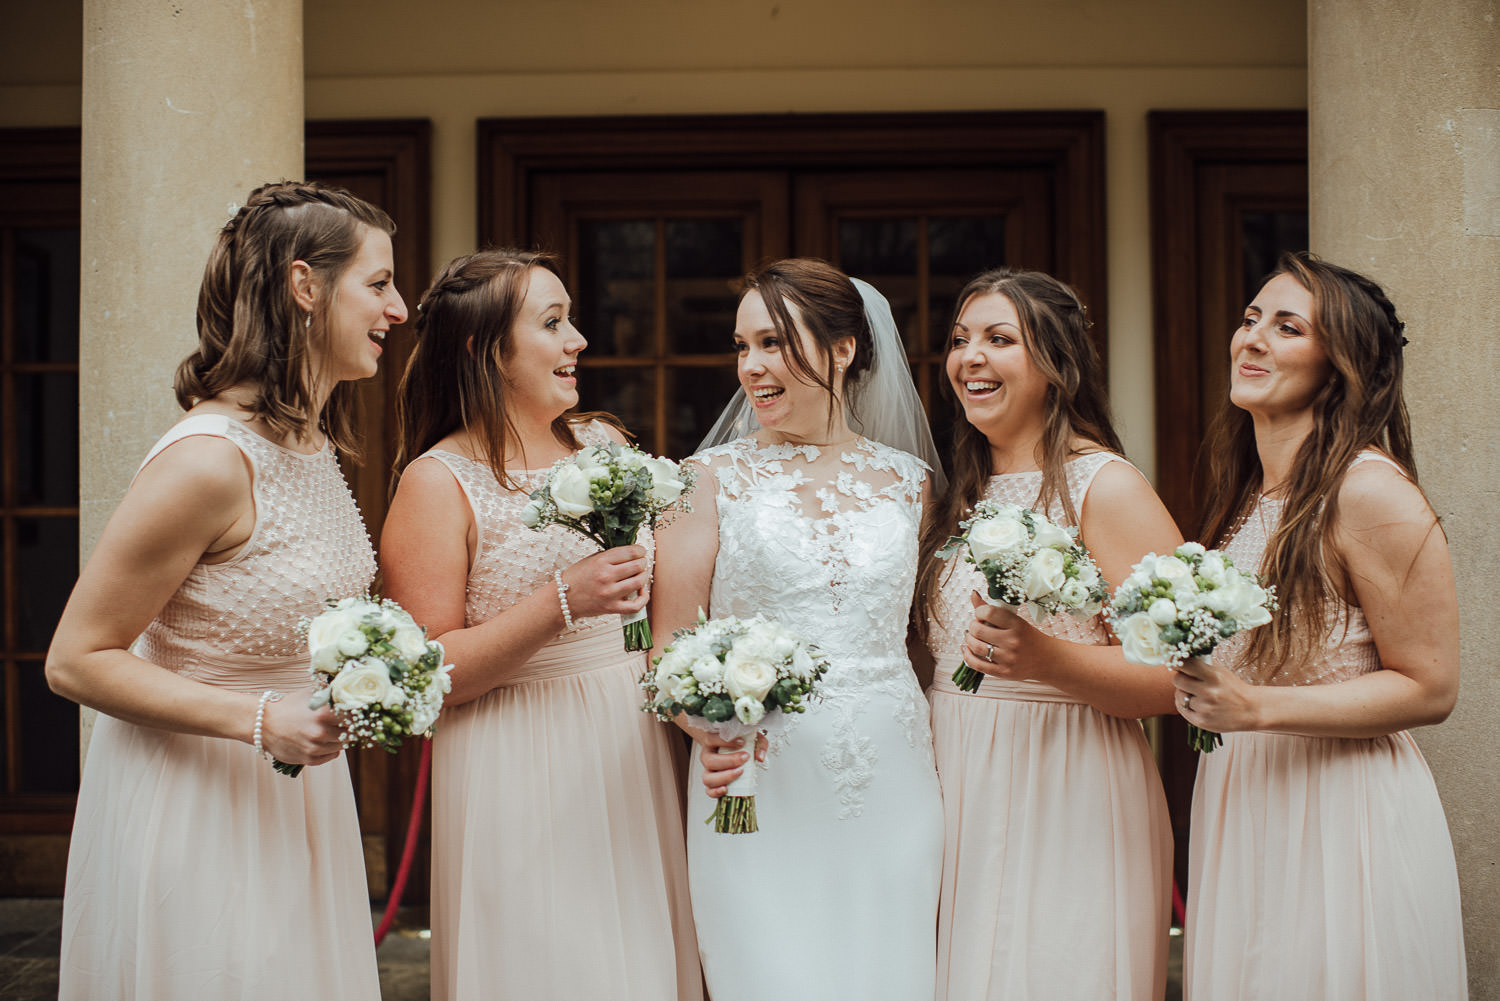 bath bridesmaids laughing by bath wedding photographer the shannons photography